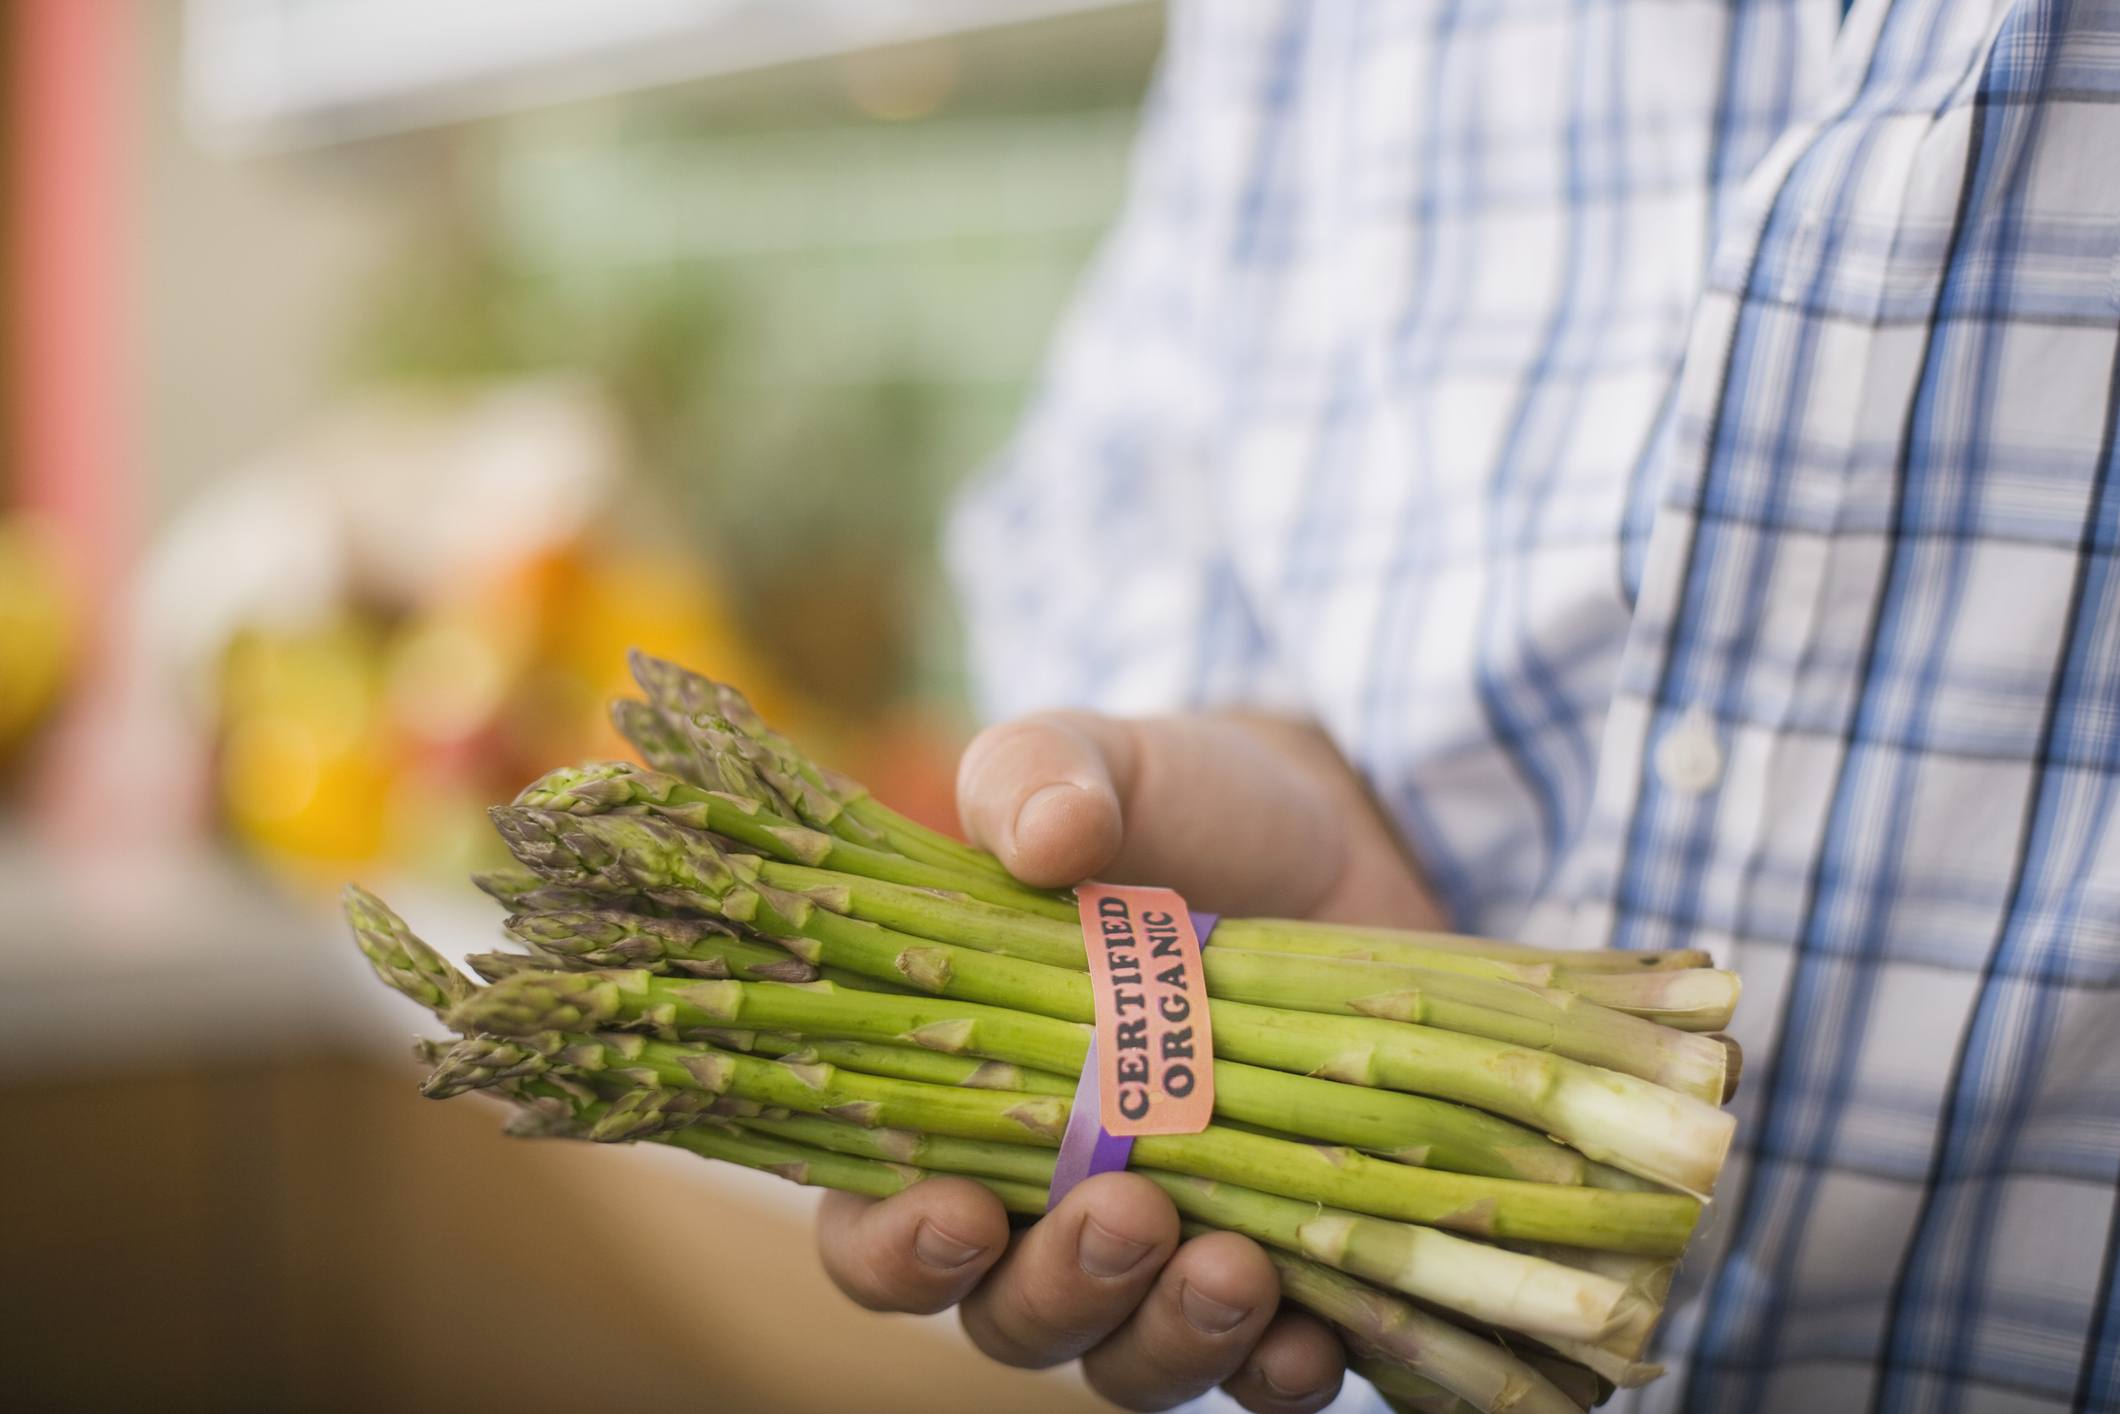 Grocery stores are full of food with labels like organic, cage-free or fair trade that appeal to a consumer's ideals. But there's often a gap between what they seem to promise and what they deliver. (Jupiterimages/Getty Images)